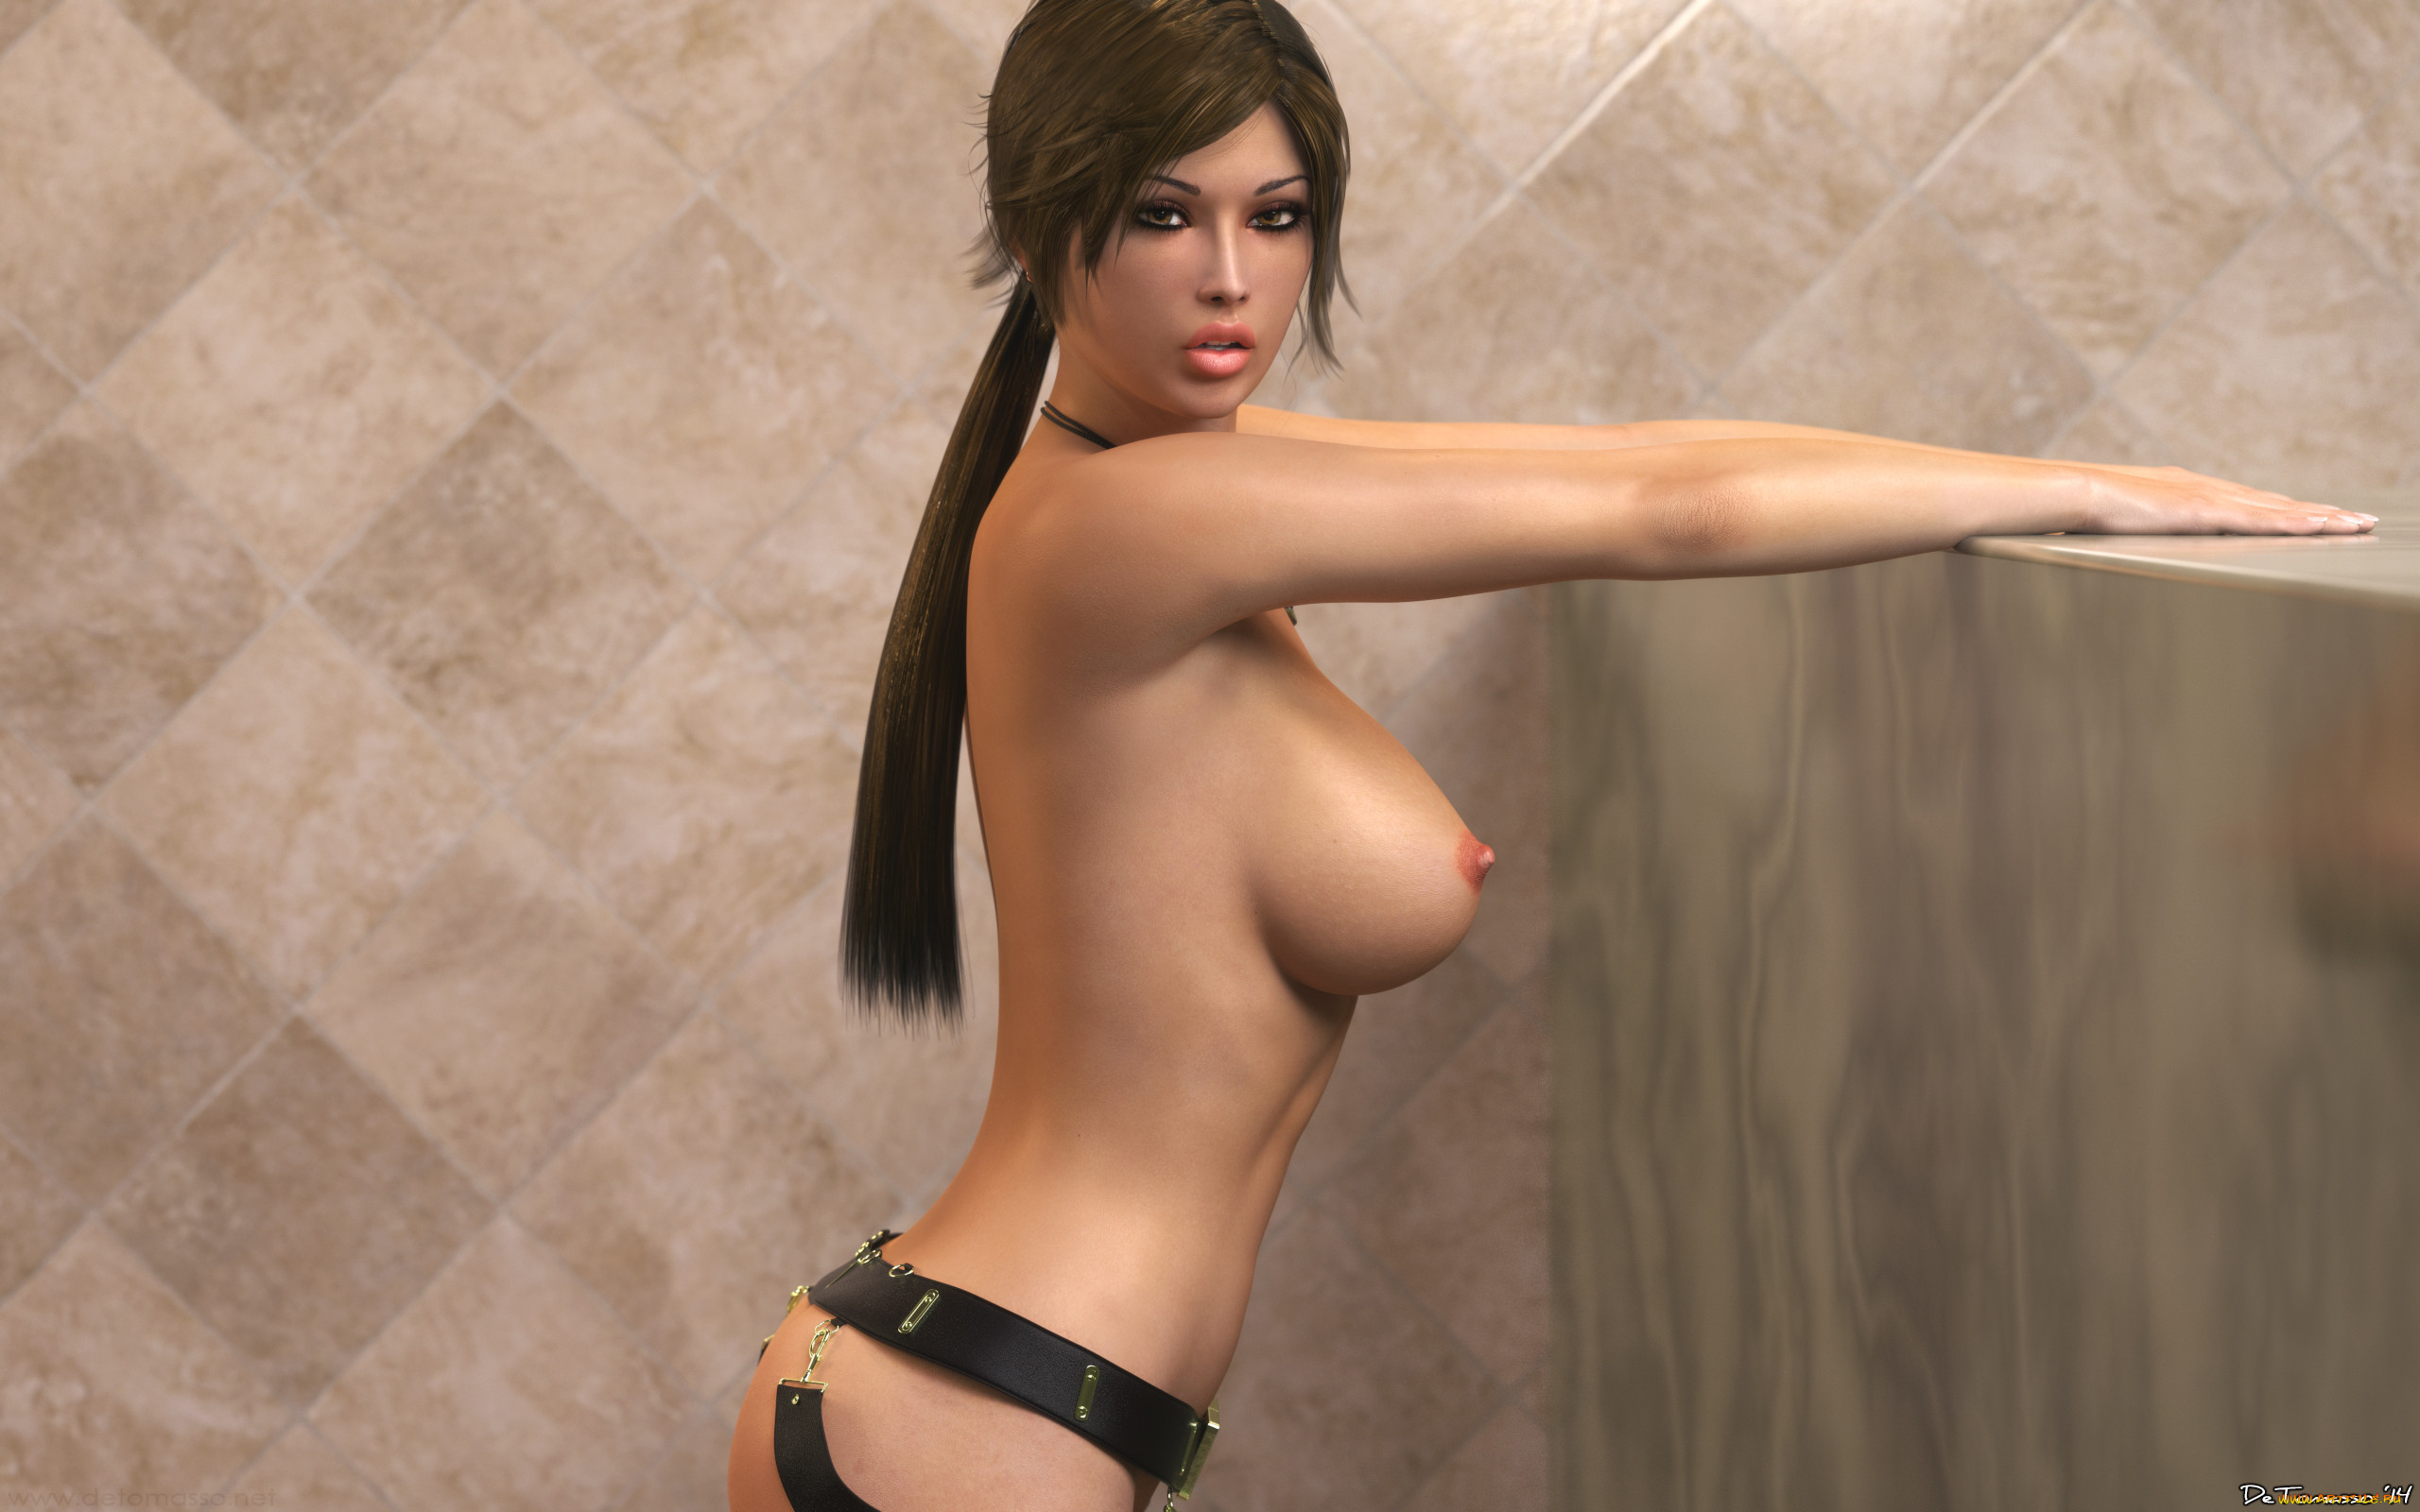 Pic erotic tomb raider sexual scenes